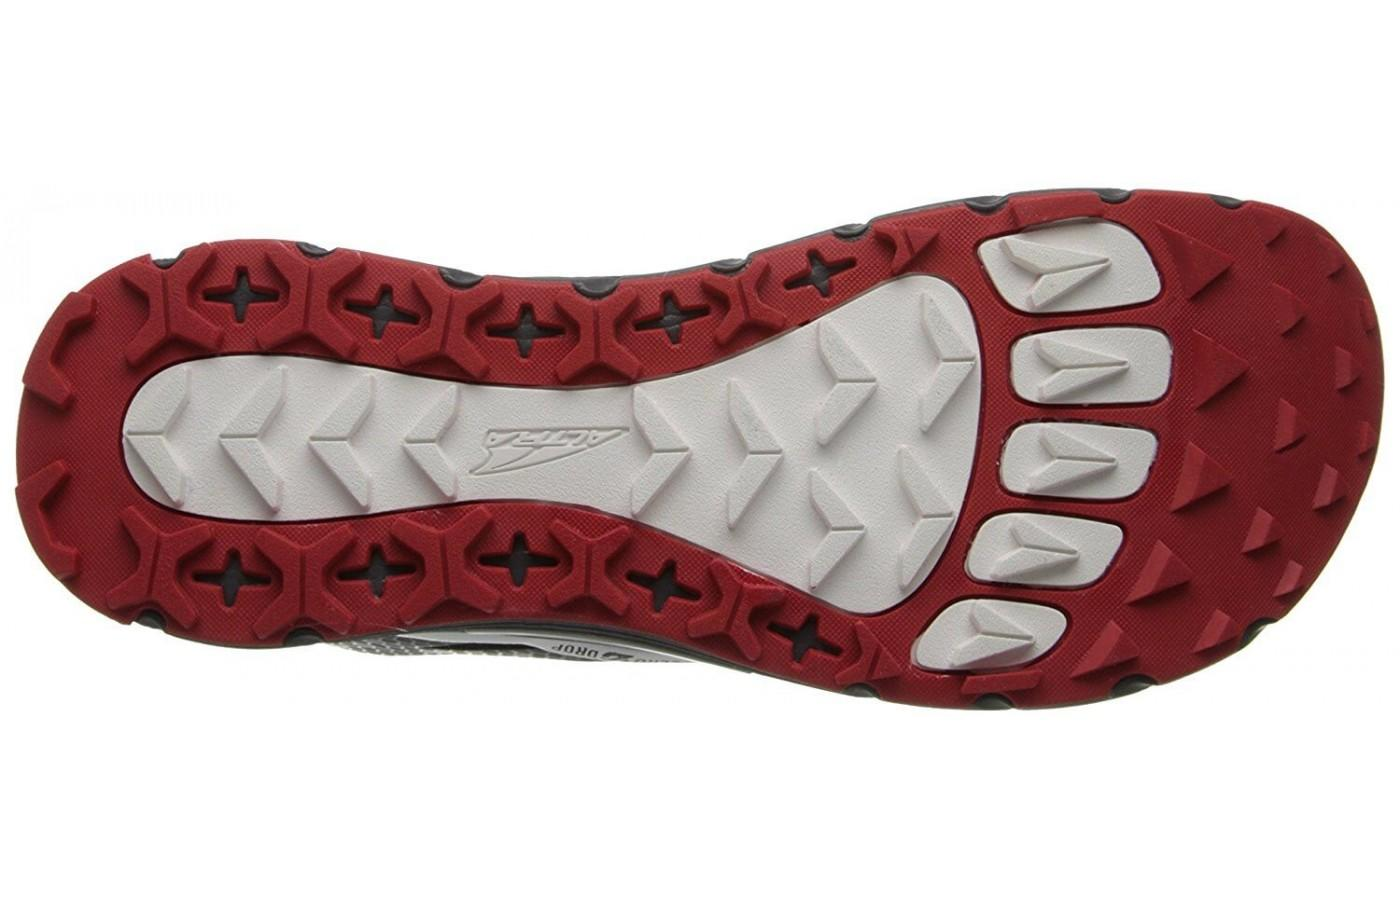 The outsole is designed to grip the trail and provides excellent traction.